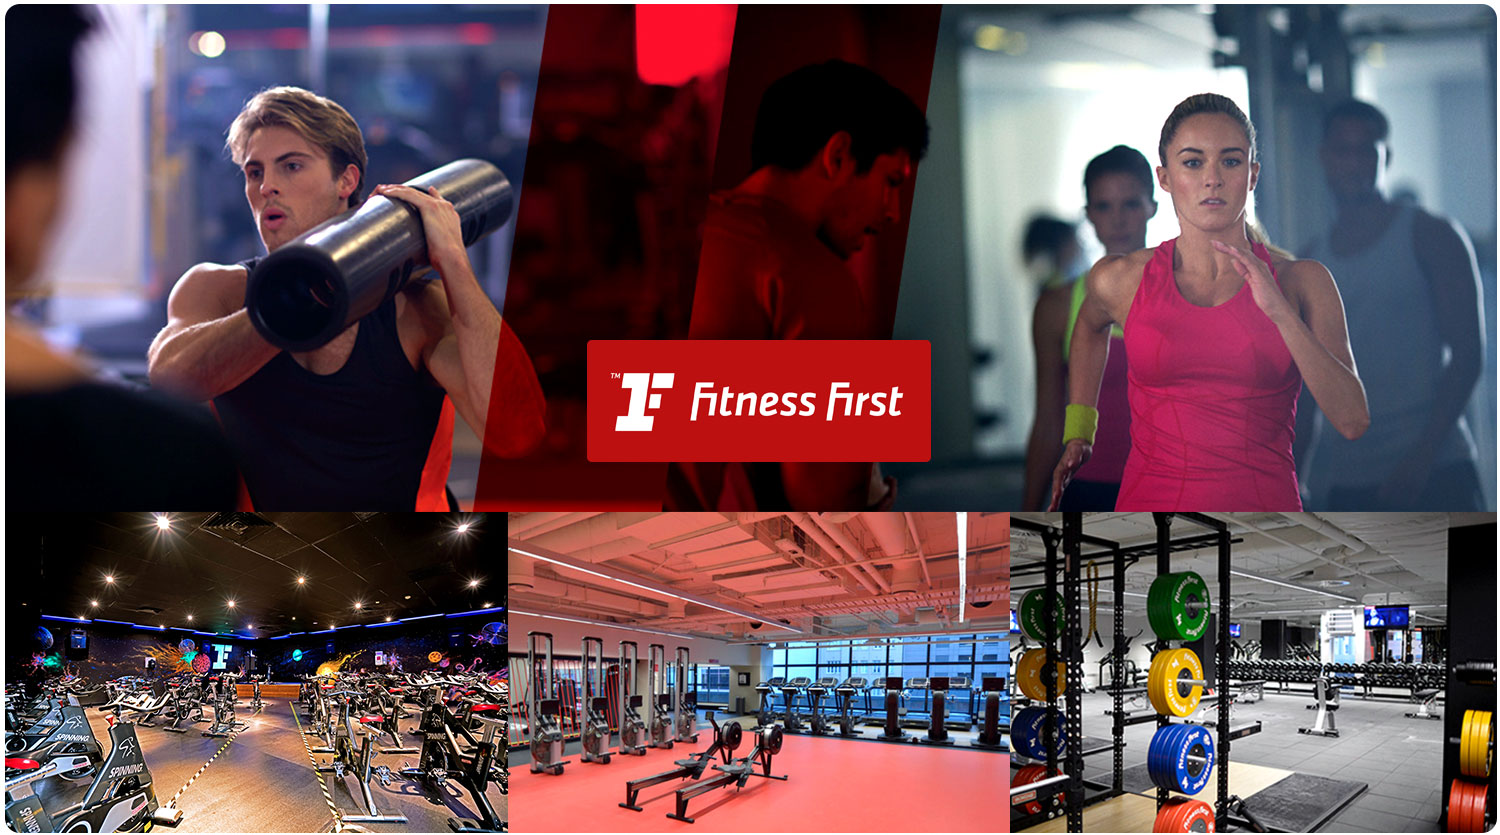 Start your Fitness Journey with Fitness First with only $14.95 for 14 days at Fitness First Brisbane QLD. Experience our first class gym and freestyle classes inc. Pilates, Yoga, HIIT, Boxing, Les Mills and more. Take the first step with Fitness First Brisbane QLD.